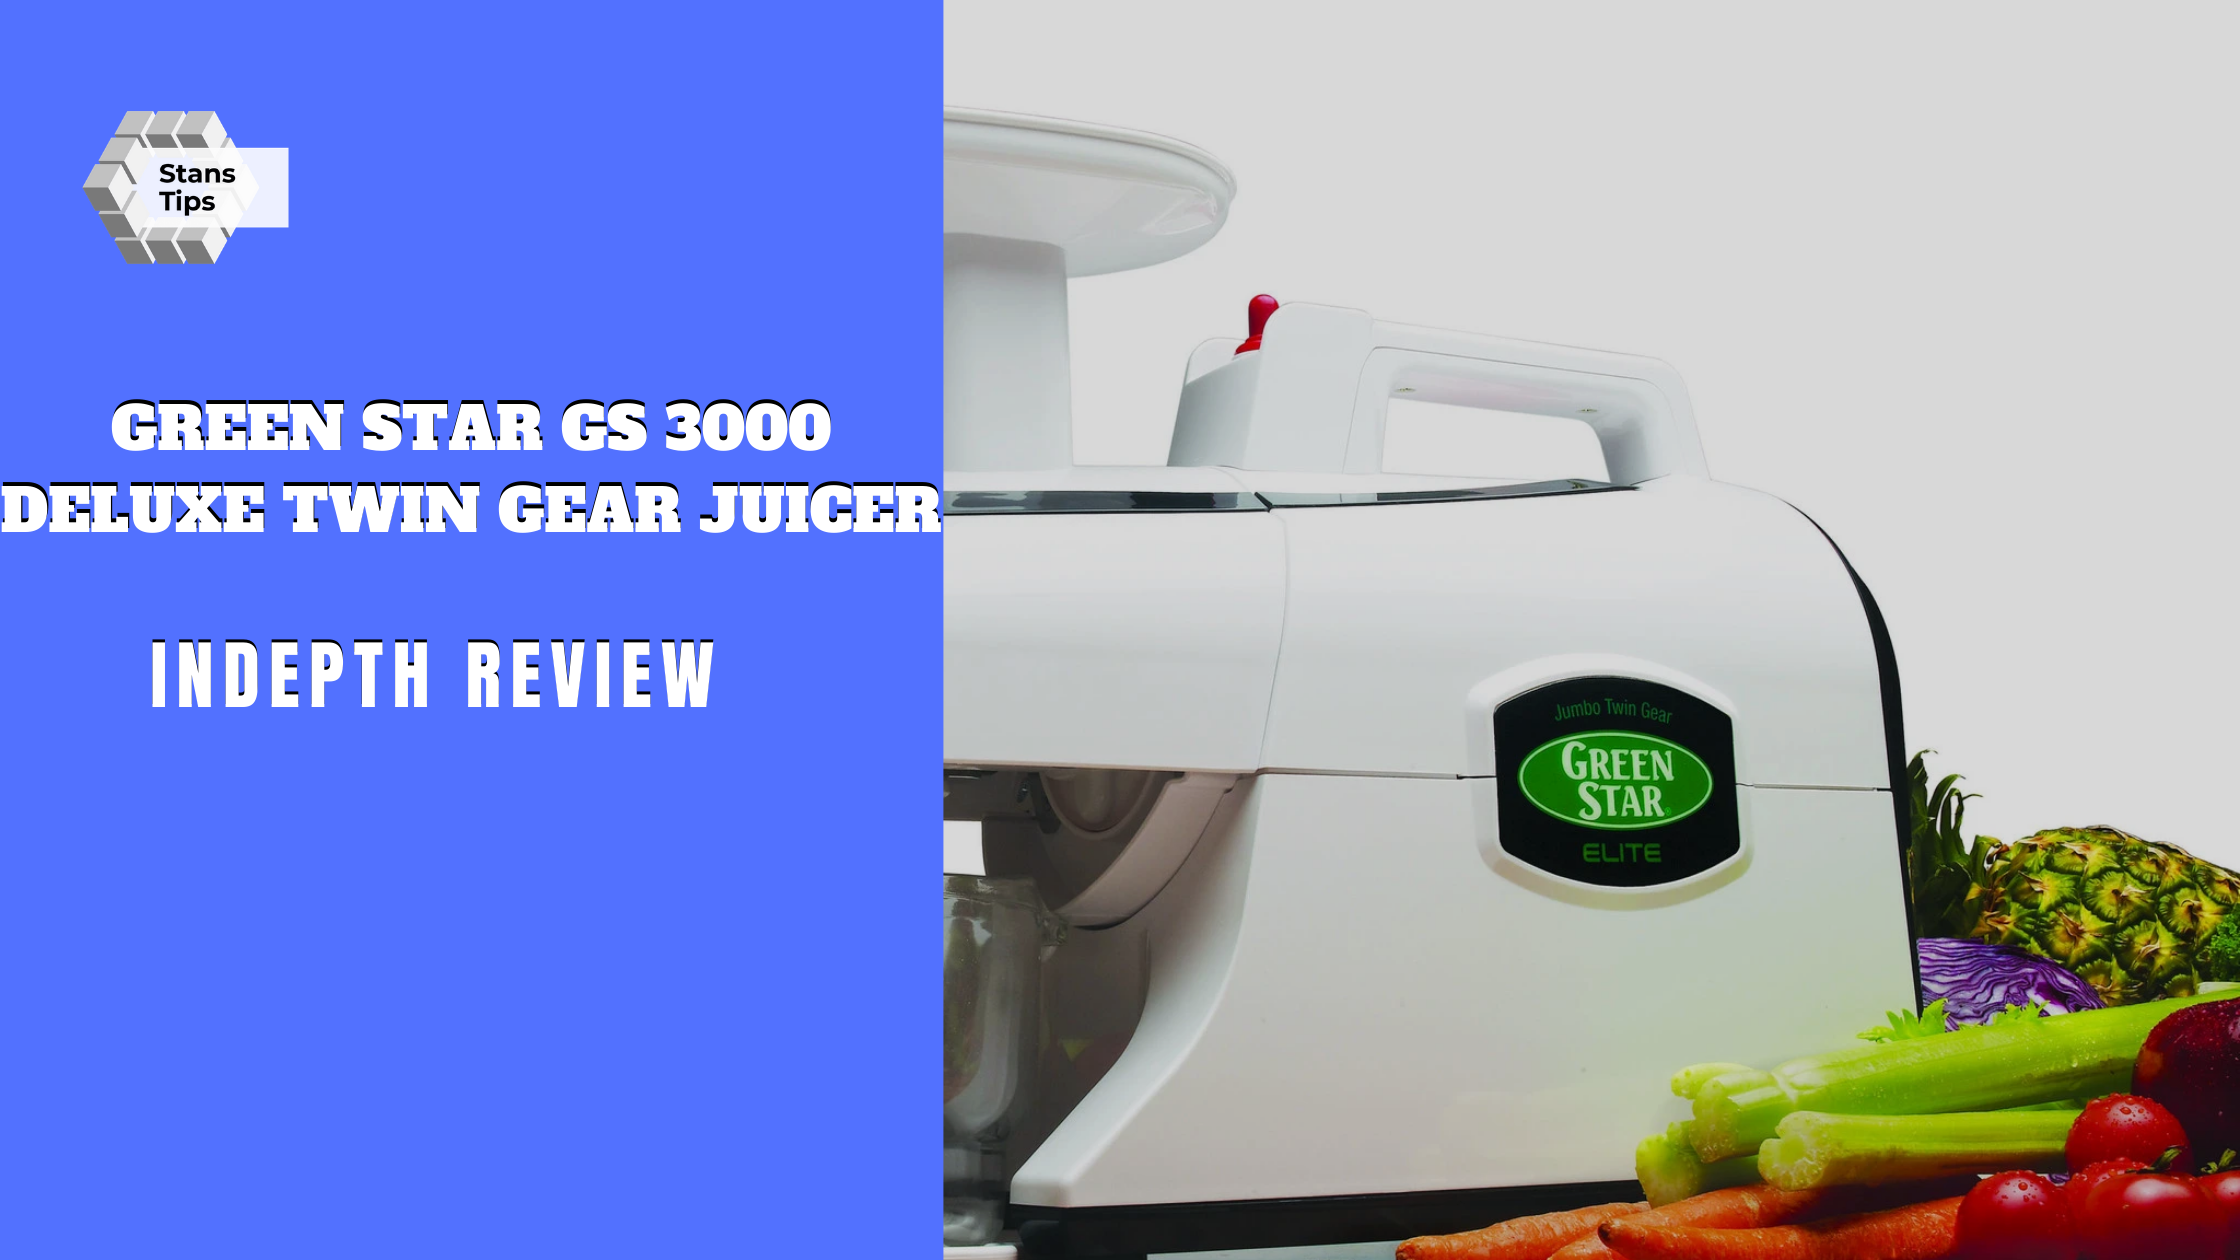 Green star gs 3000 deluxe twin gear juicer review